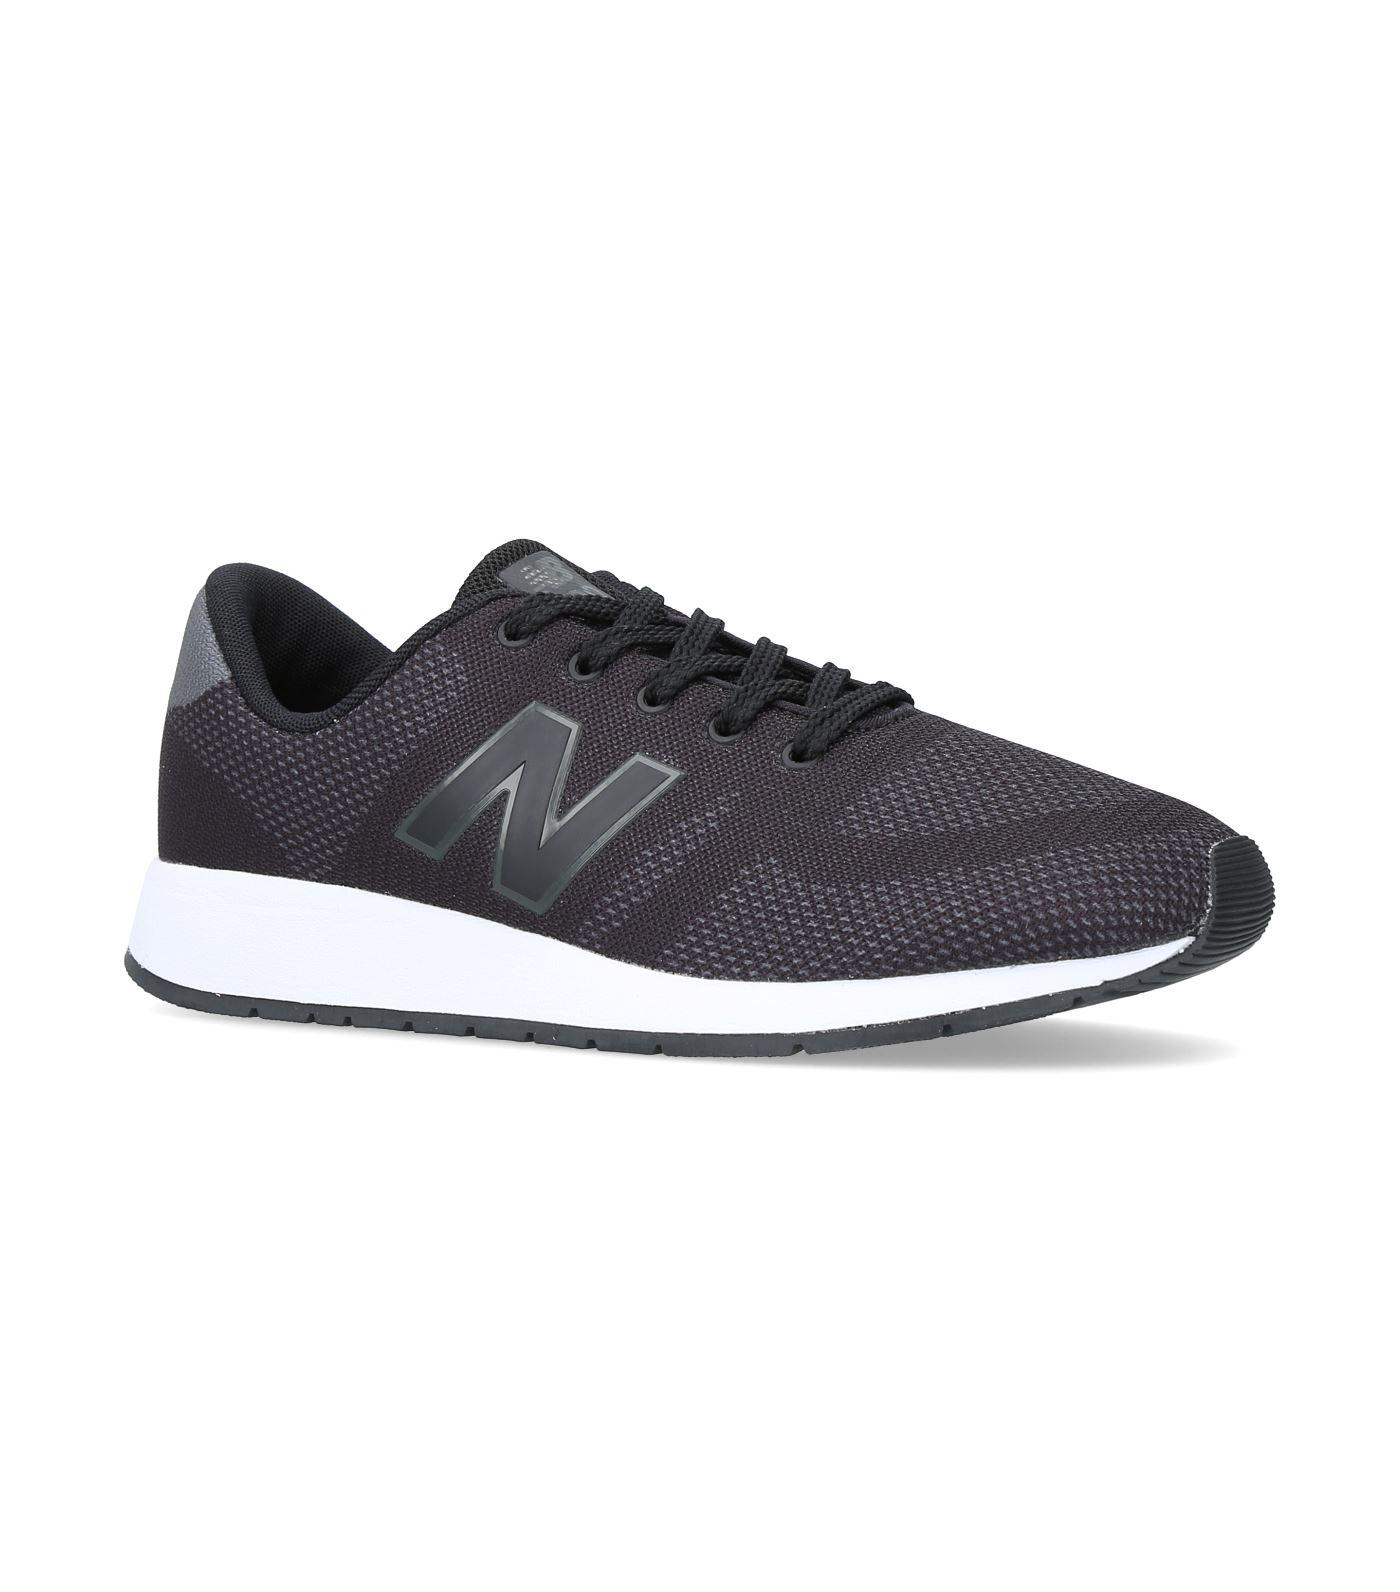 New Balance 420 Hybrid Lace Up Sneakers In Black